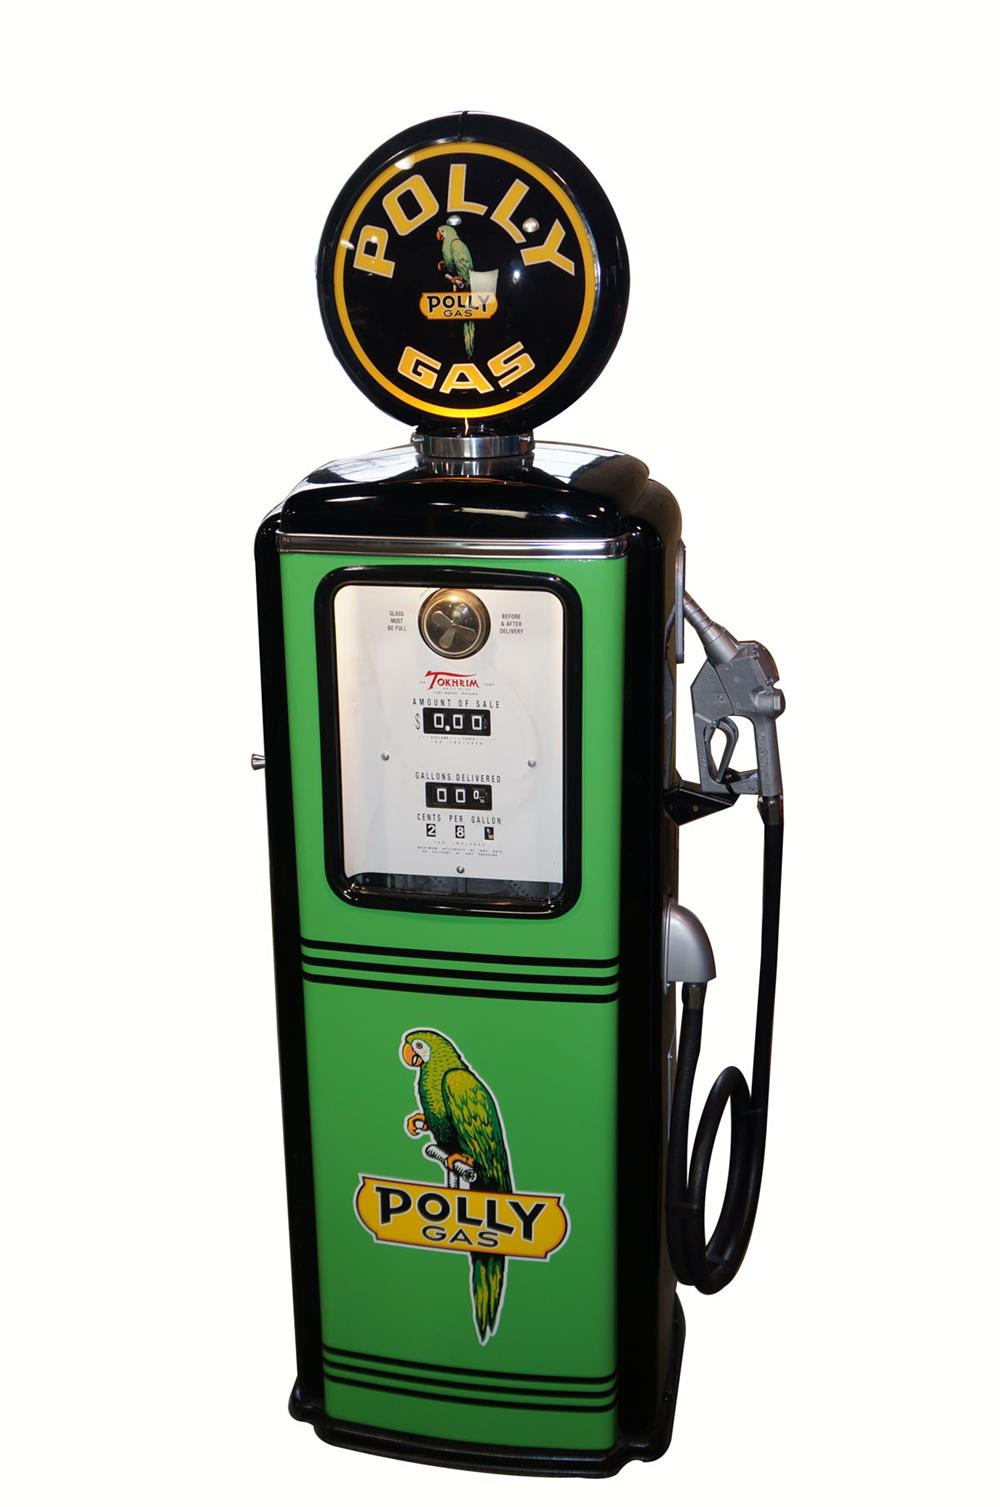 Late 1940's-early 1950's Polly Oil Tokheim model 39 restored service station gas pump. - Front 3/4 - 182018